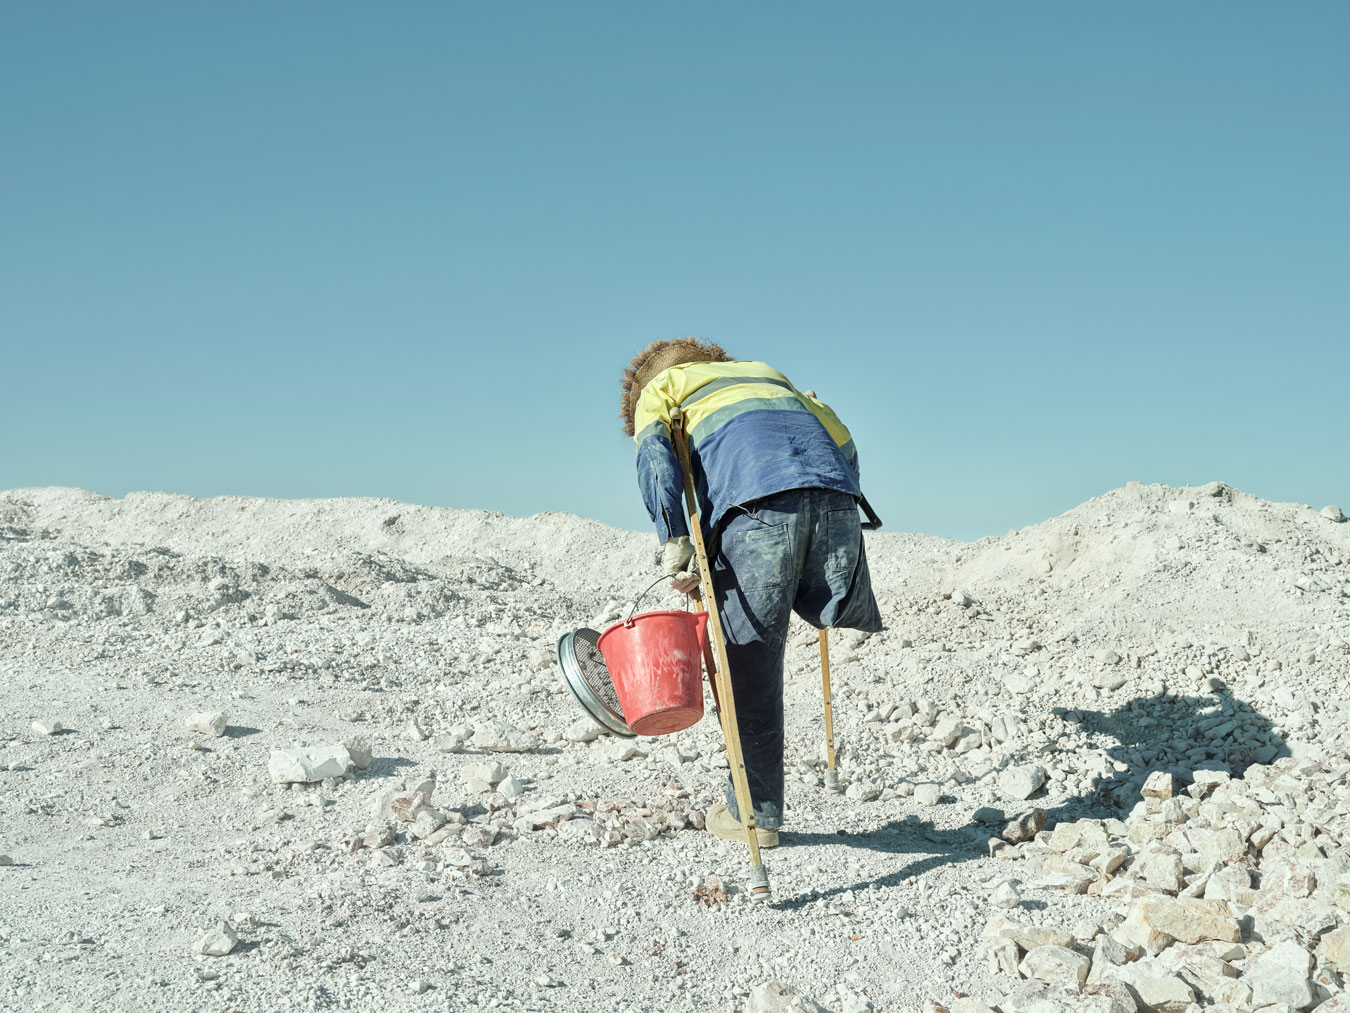 man-from-behind-climbing-dusty-terrain-with-crutches